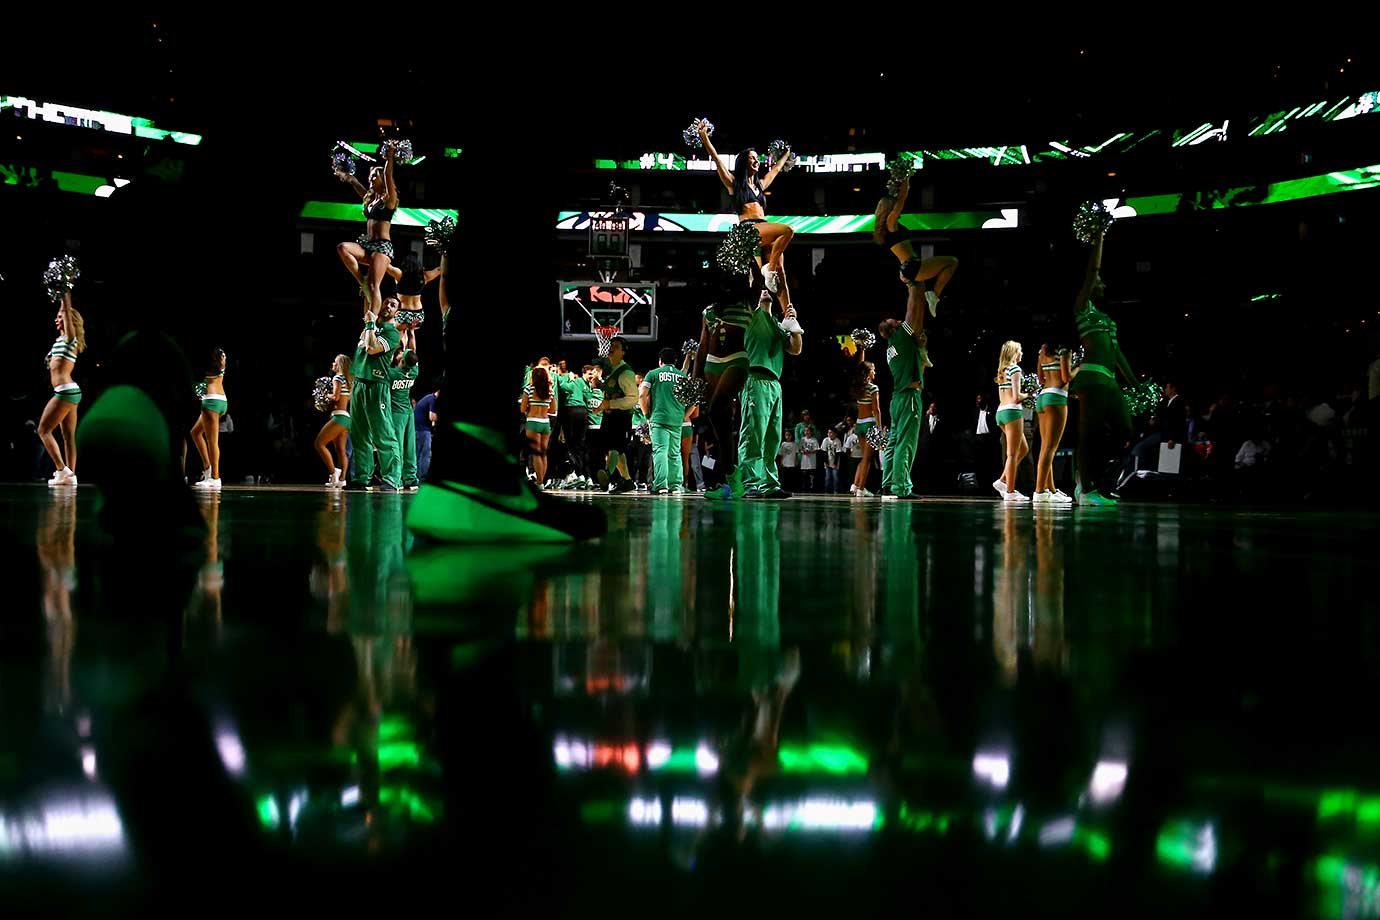 The Celtics dancers perform before the game against the Orlando Magic.